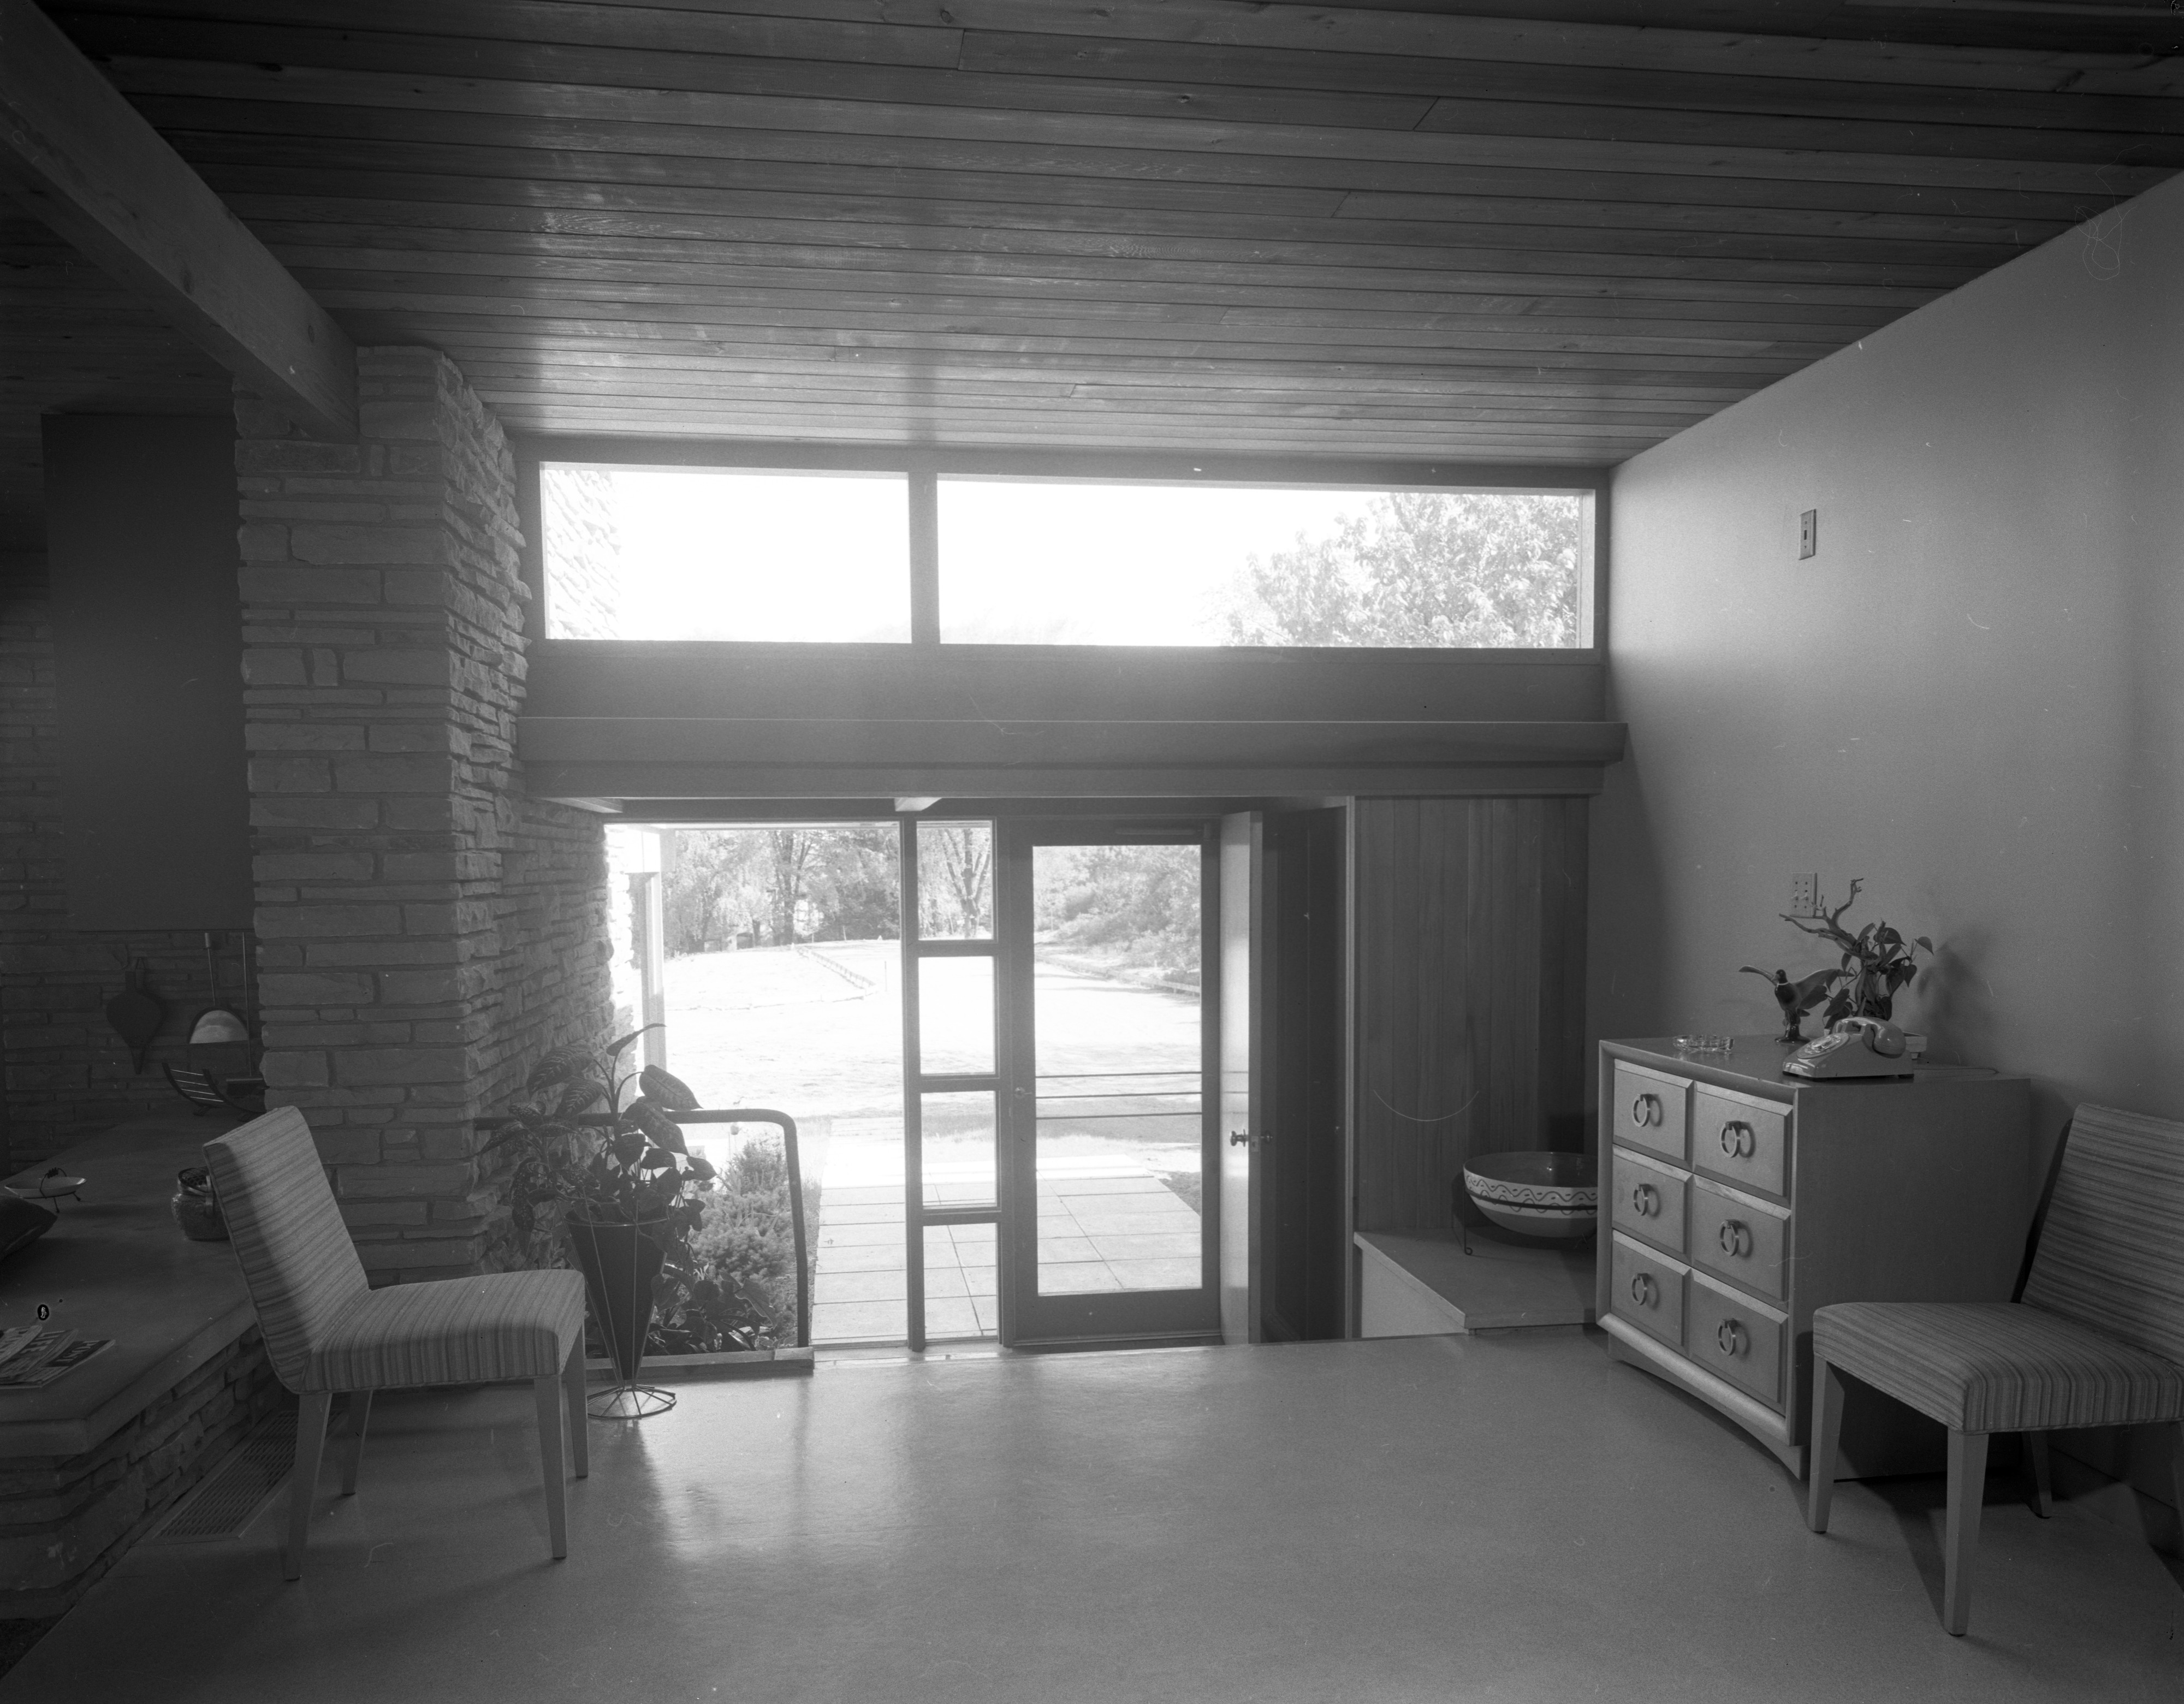 Entrance Hall In Hodges' Mid-Century Modern Home On Highland Lane, September 1957 image